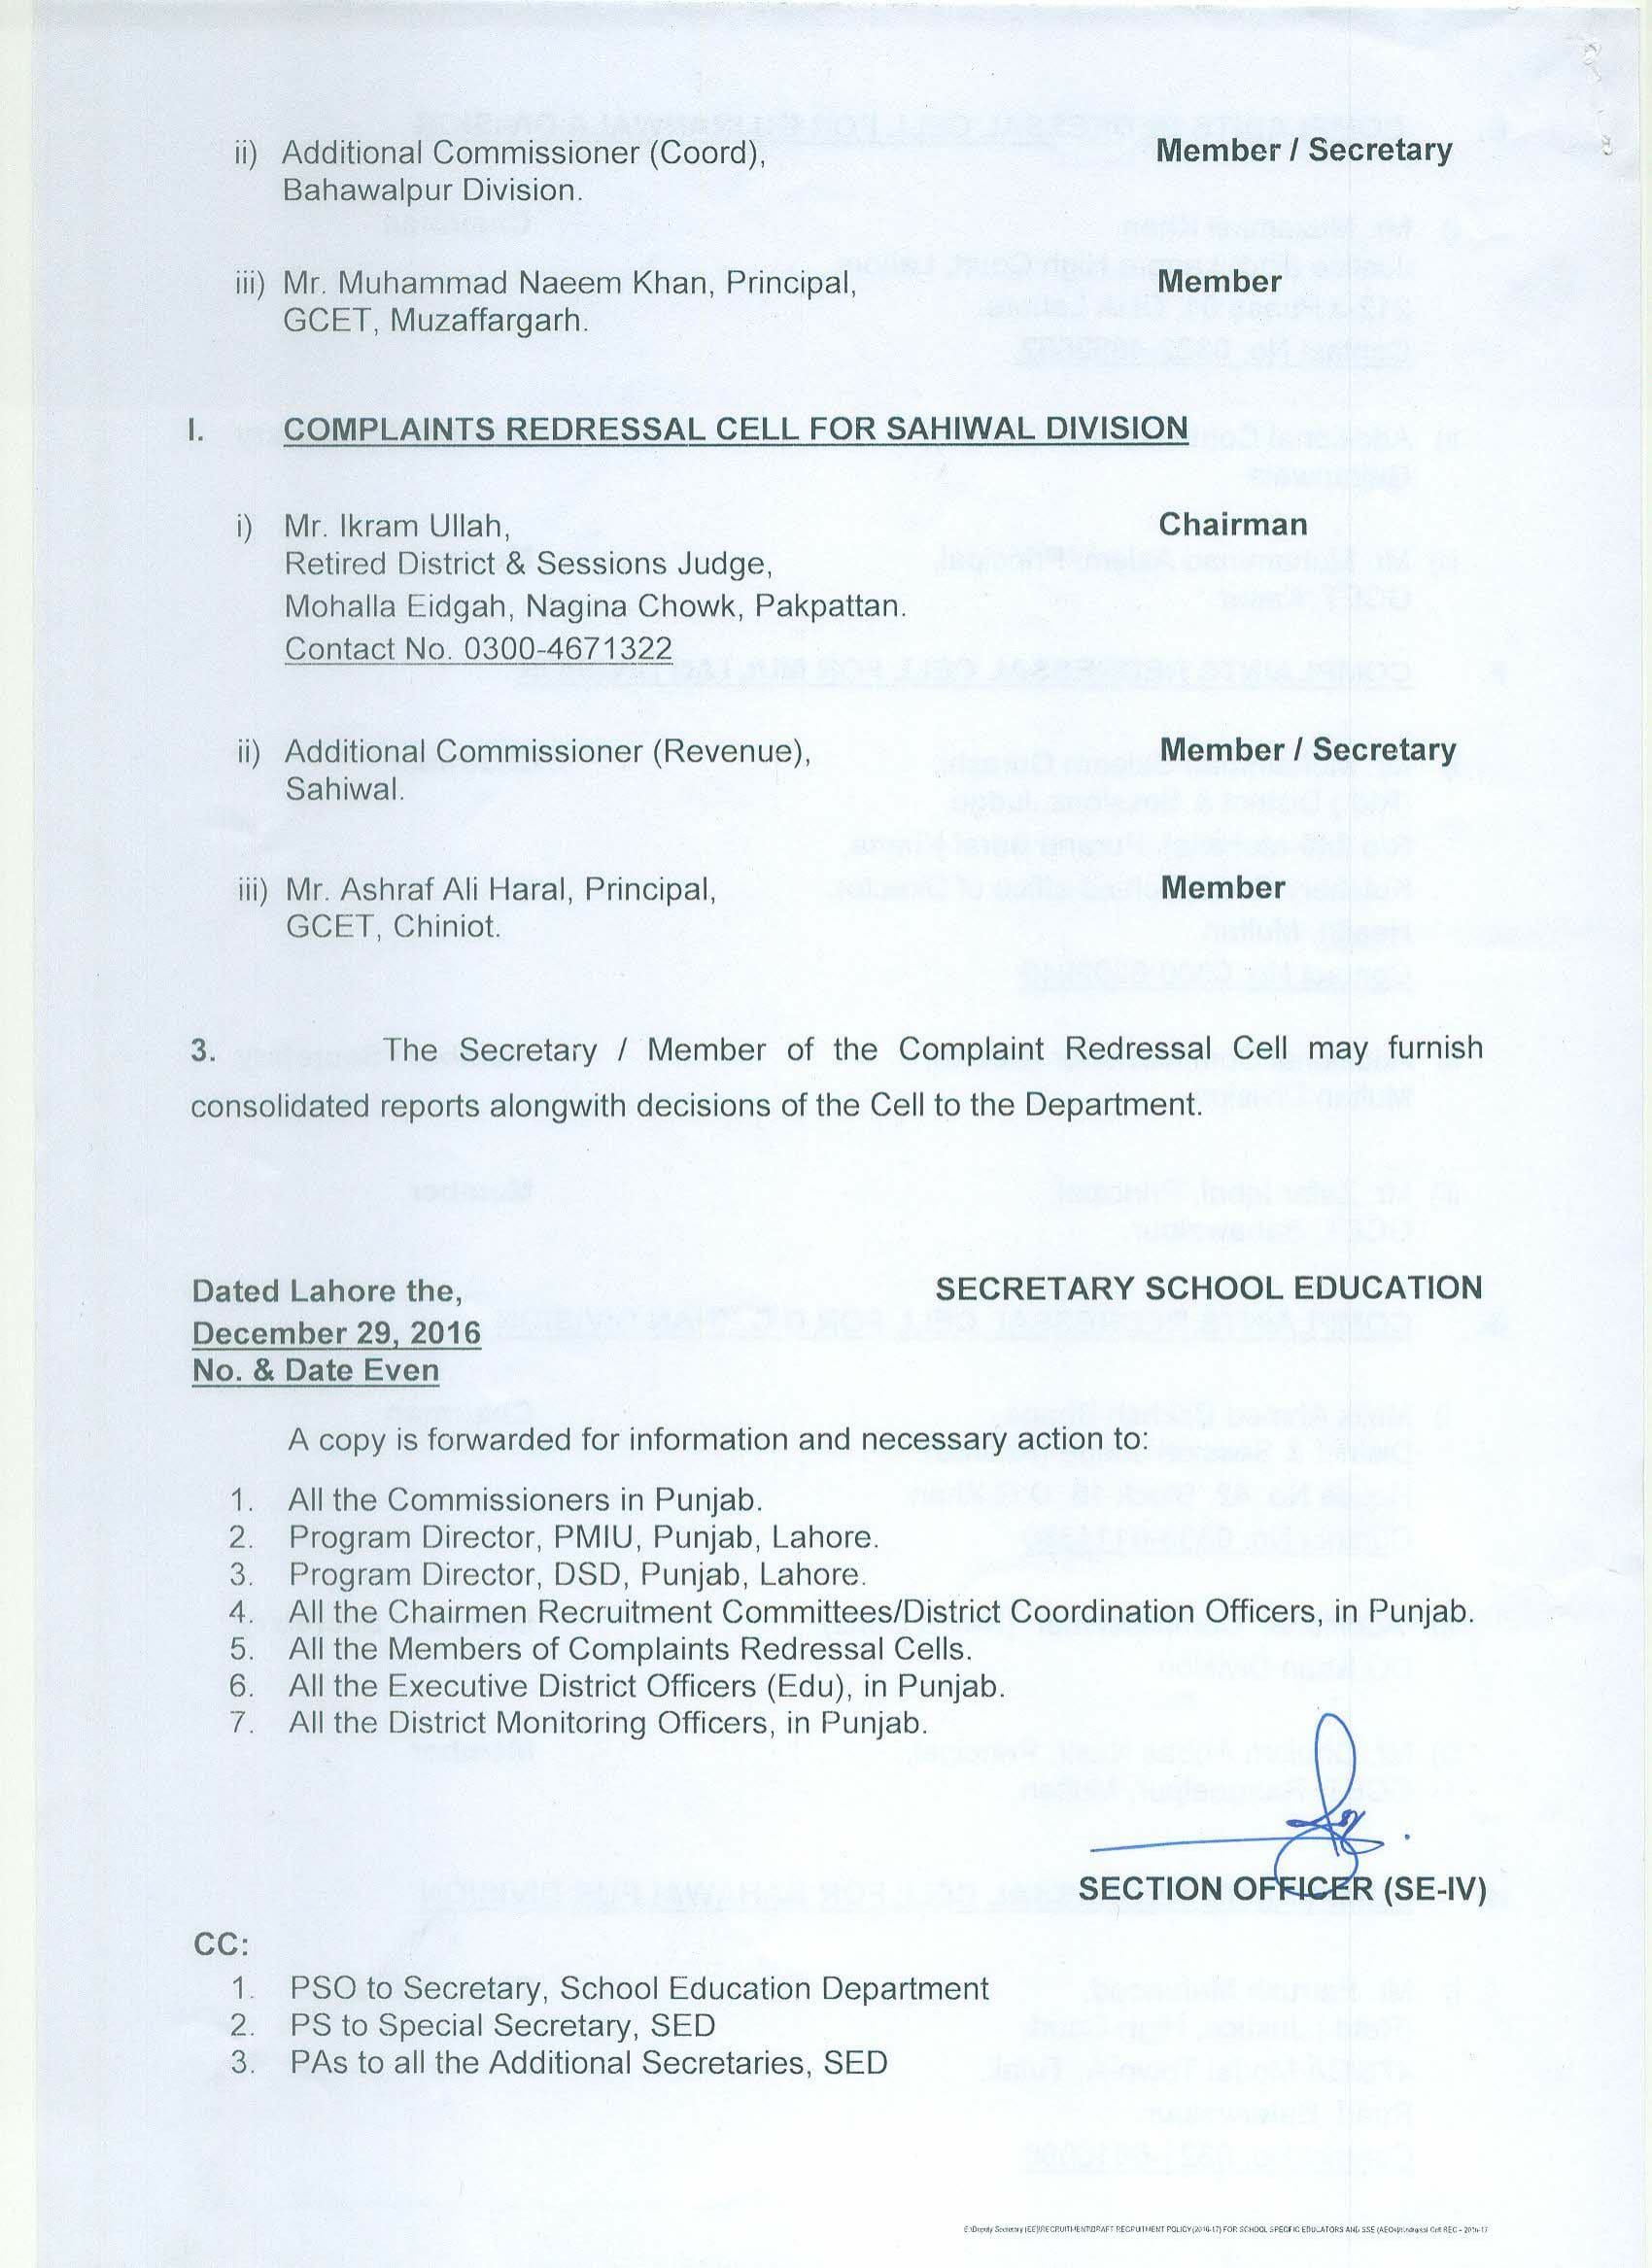 NOTIFICATION COMPLAINTS REDRESSAL CELL AT DIVISIONAL LEVEL IN PUNJAB